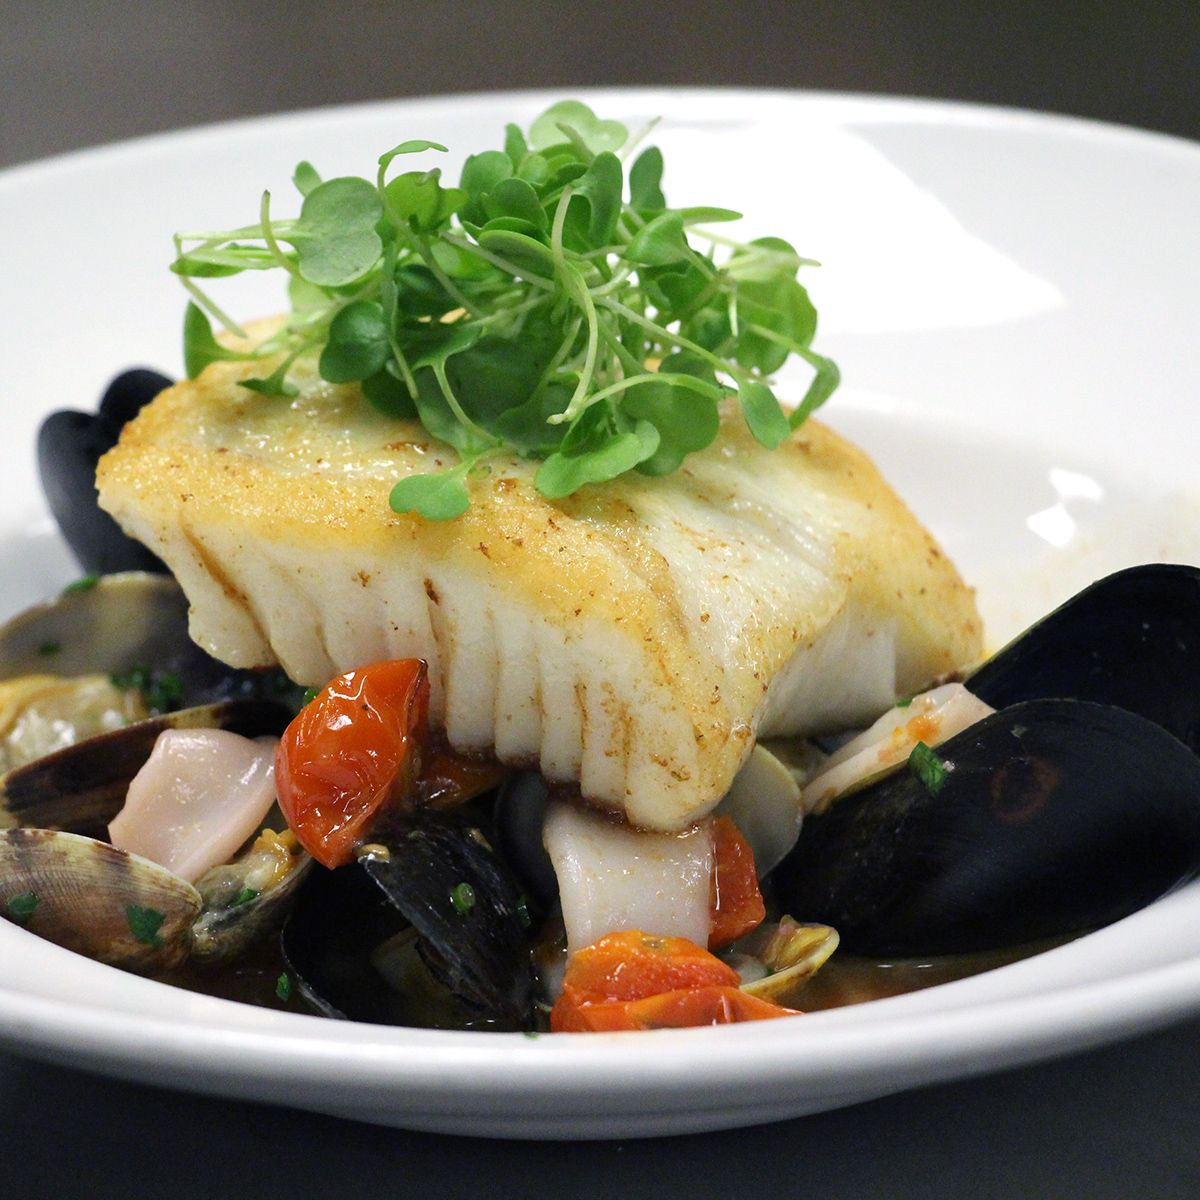 Halibut In Guazzetto With Mussels Clams Calamari Spring Seasonal Menu At Catch American Seafood At Lux Santa Monica Restaurants Seafood Restaurant Offers